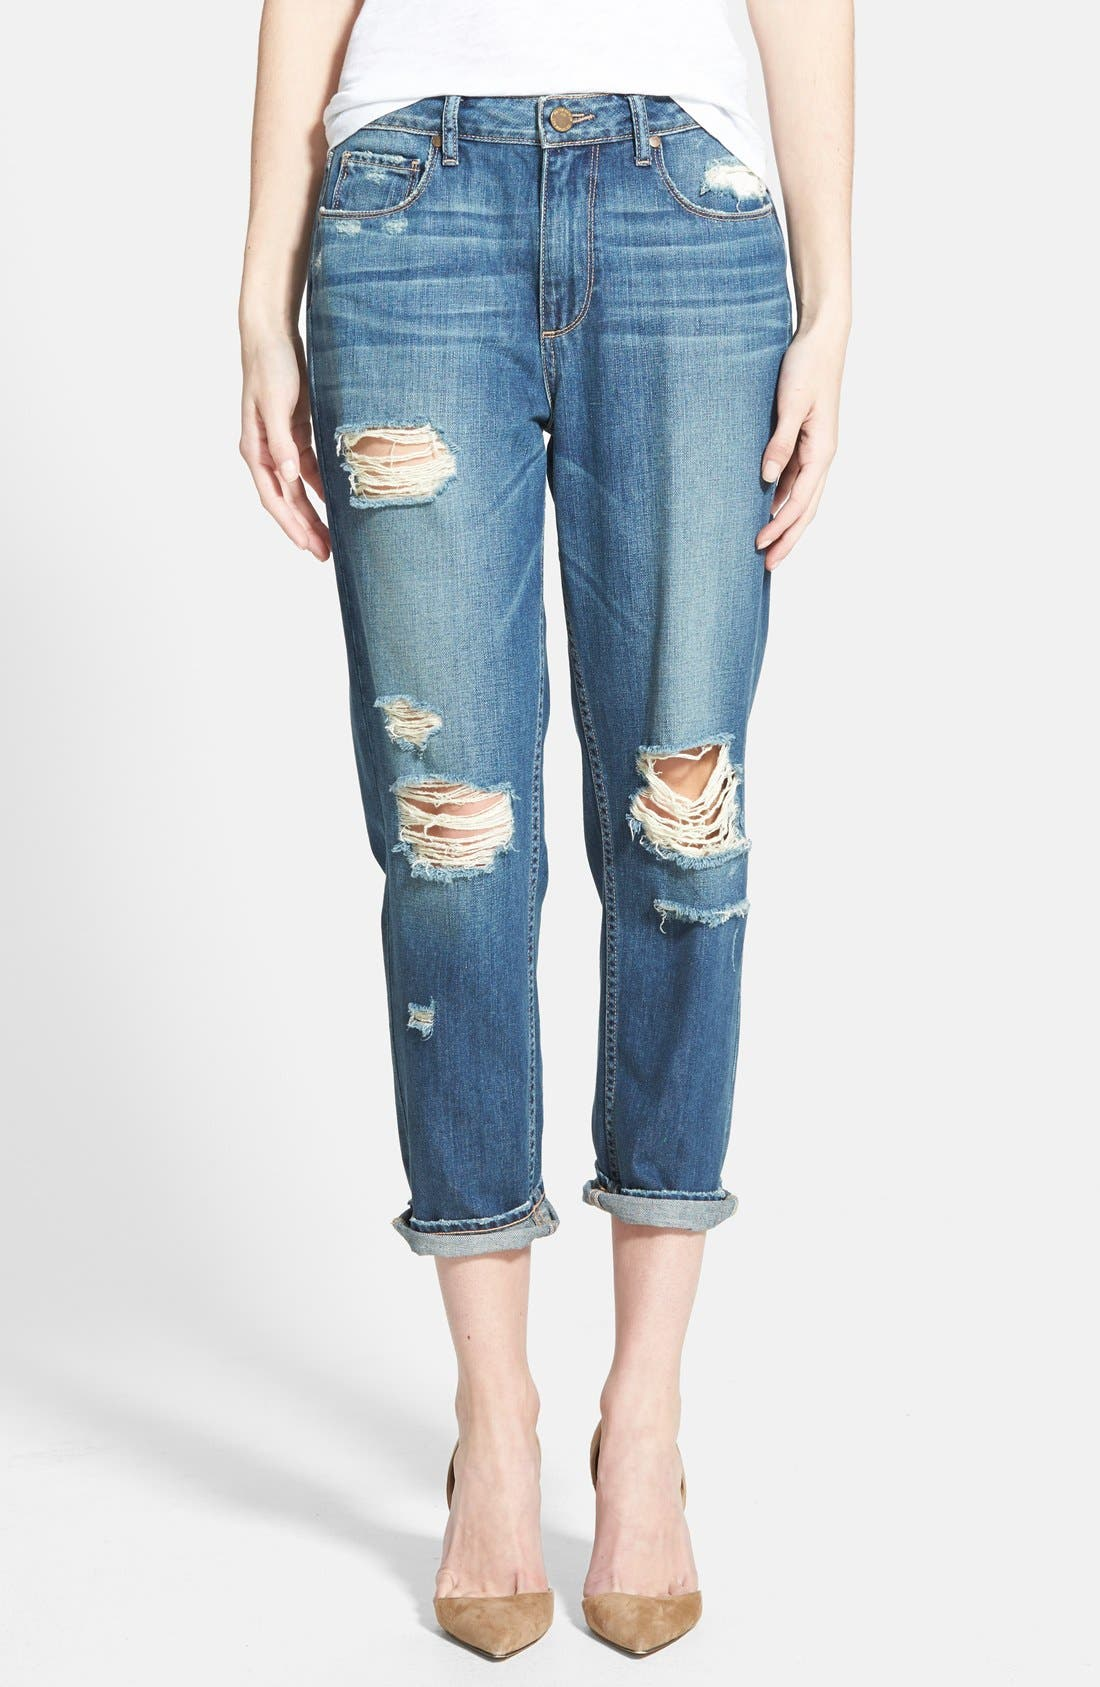 Main Image - Paige Denim 'Callie' Crop Boyfriend Jeans (Danica Destructed Blue)